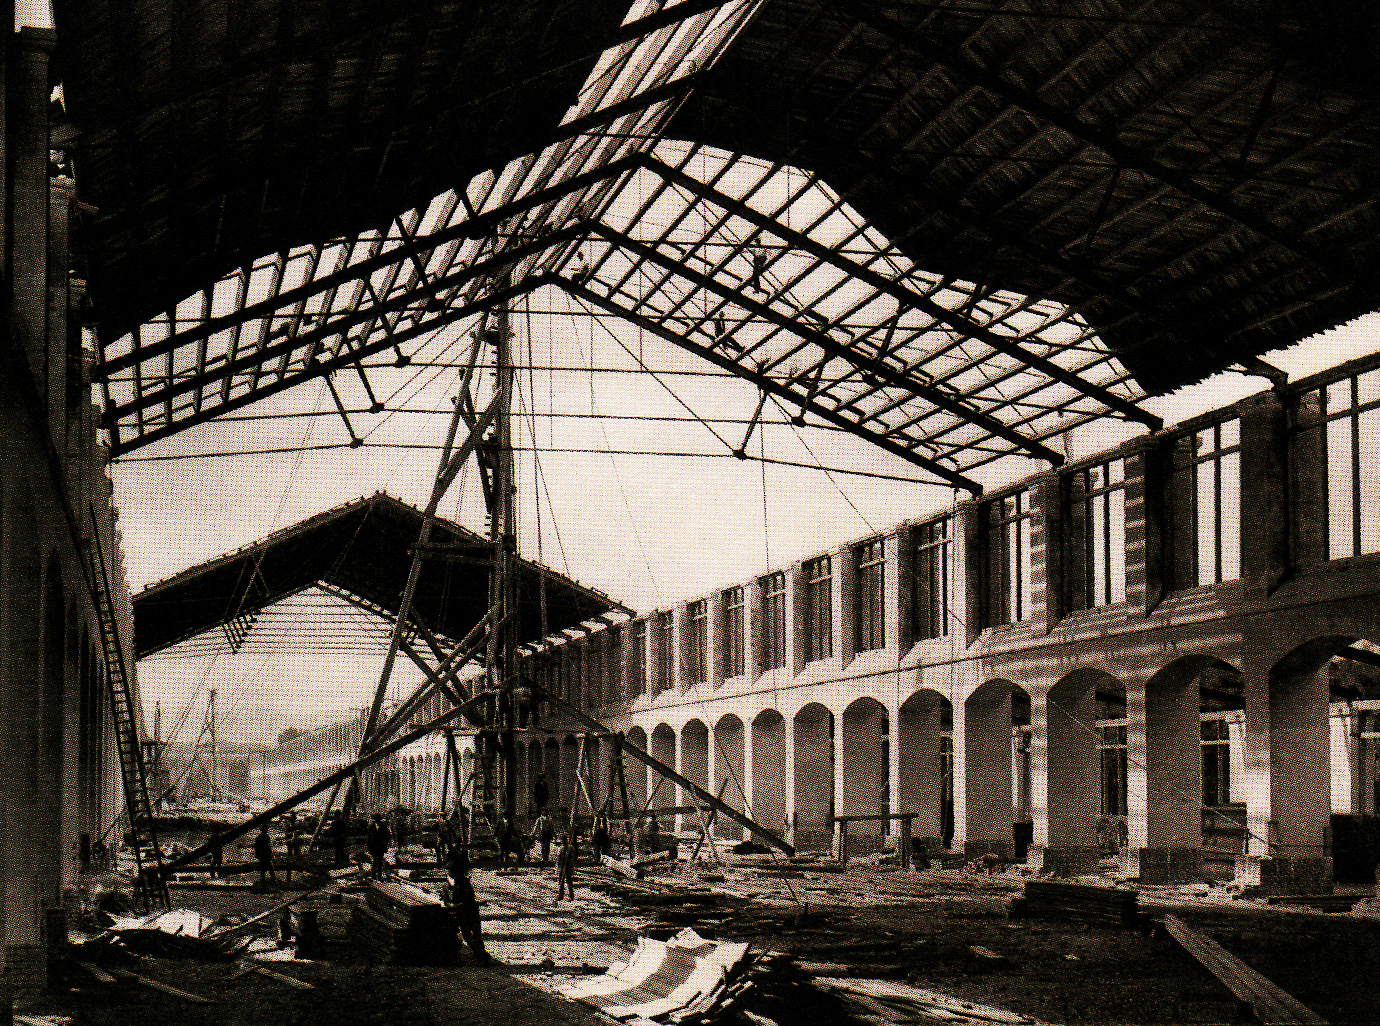 https://upload.wikimedia.org/wikipedia/commons/3/38/Expo_1873_under_construction.jpg